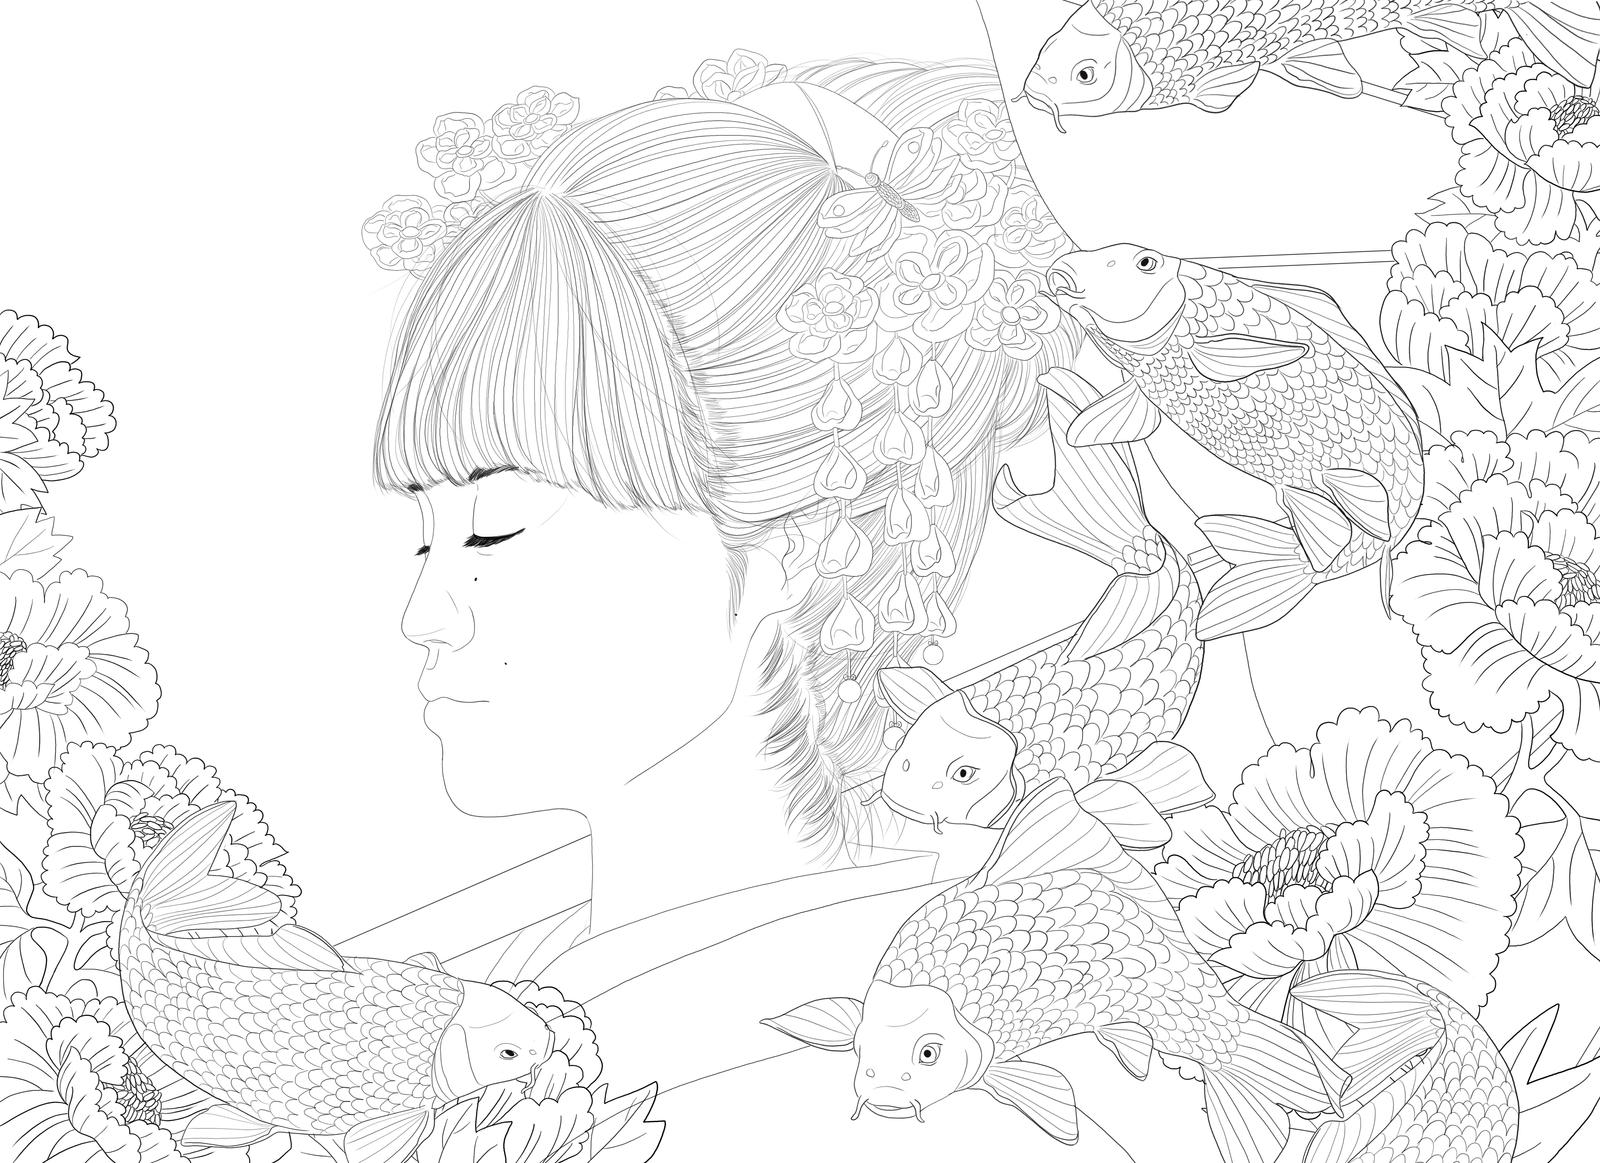 Japanese Flower Line Drawing : Yukina japanese style koi fish flowers lineart by rijio on